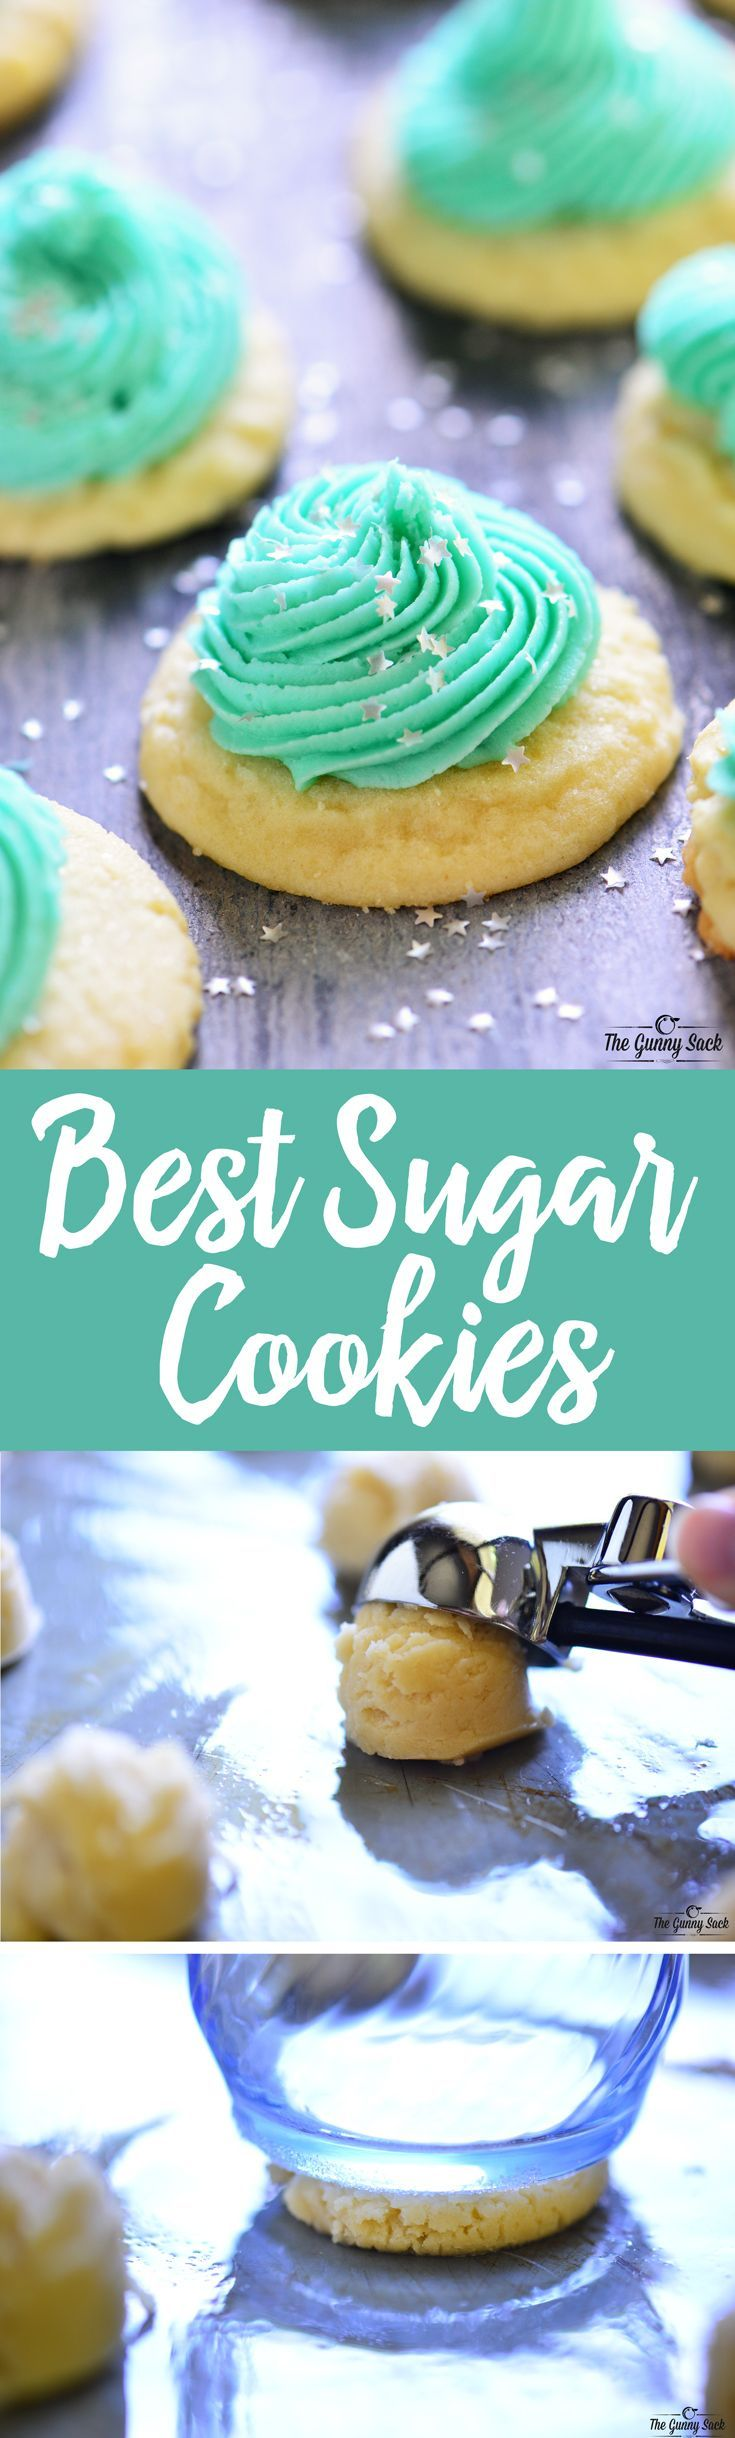 The BEST Sugar Cookie recipe for soft, tender cookies with NO refrigeration needed, NO rolling dough and NO cookie cutters! Frost with your team's colors for Game Day!